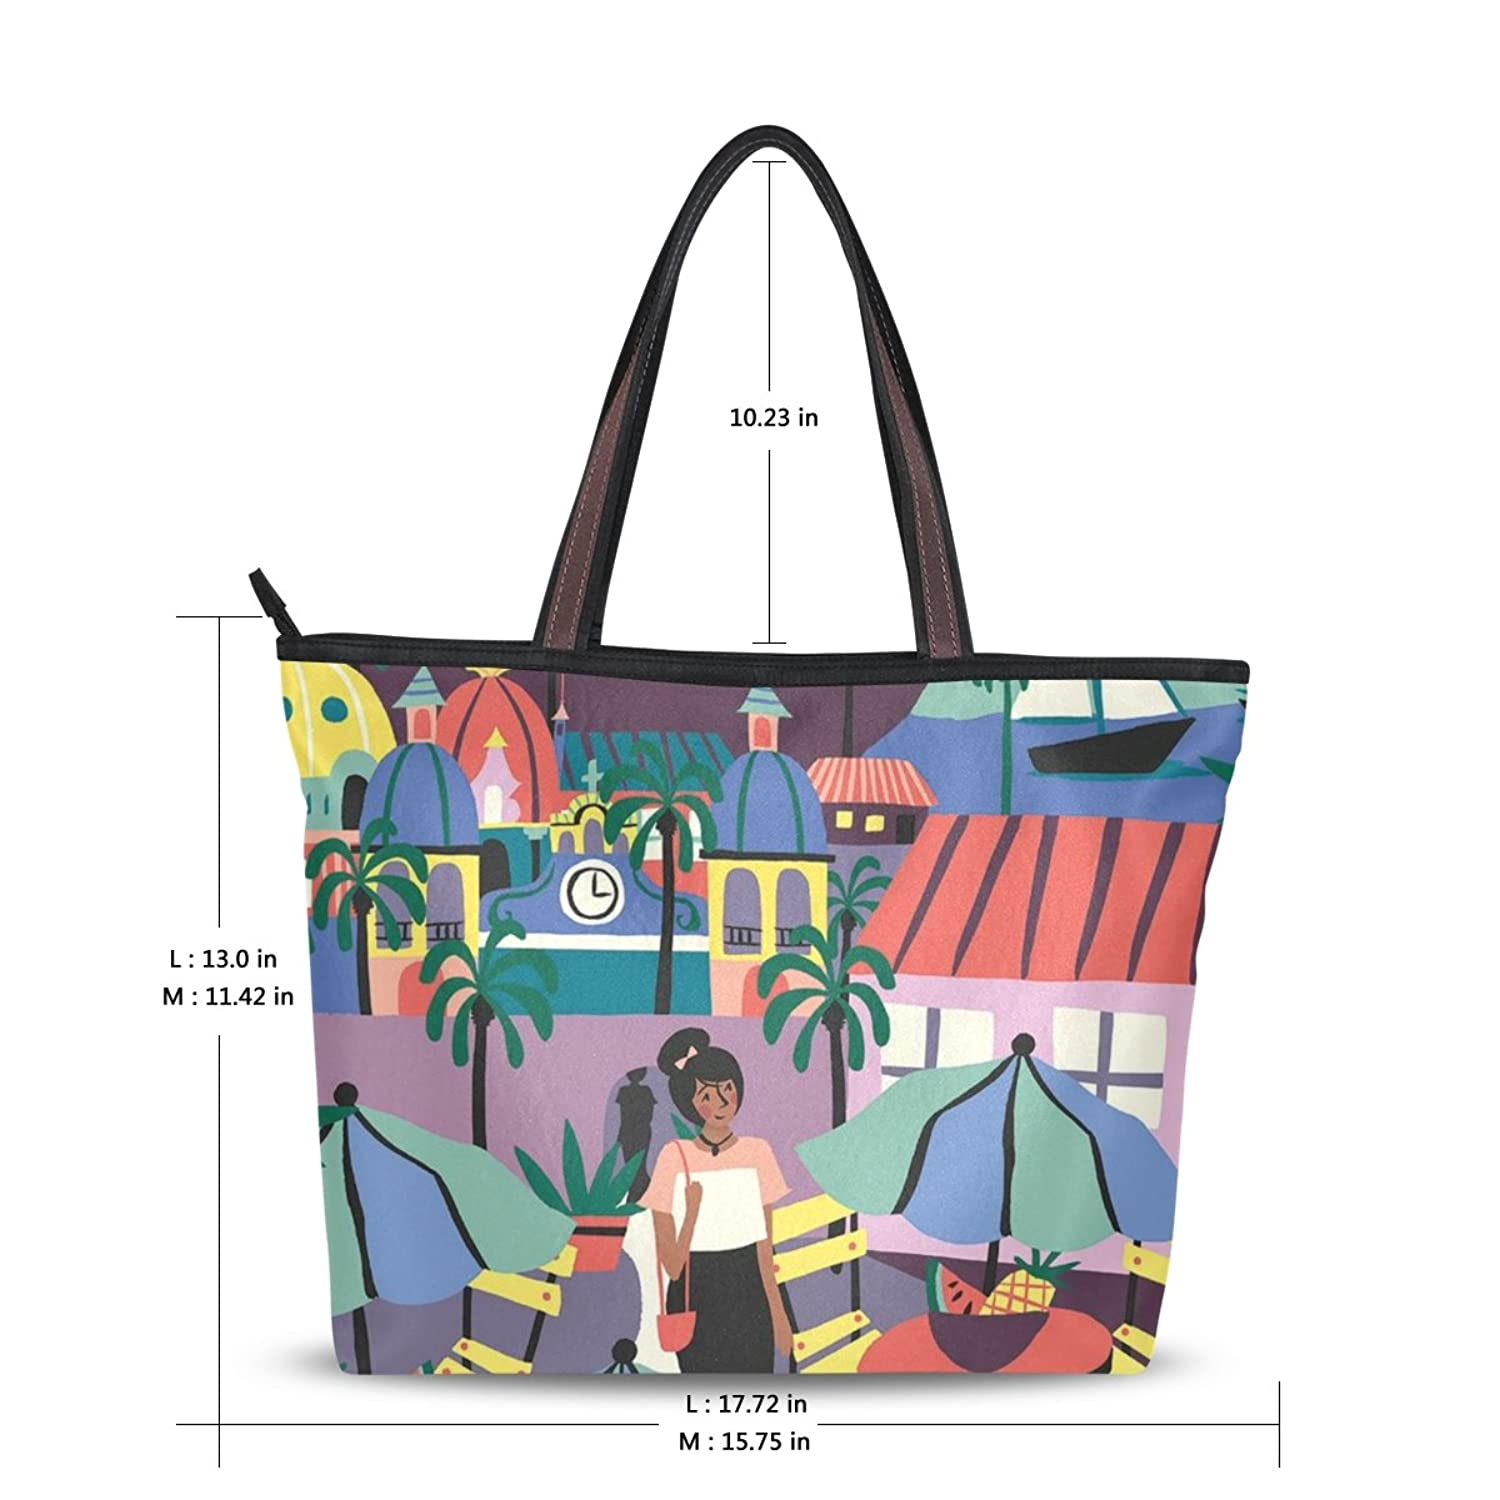 LEEZONE Casual Shoulder Handbag with Leisurely Life Printing for Femal(Women,Lady,Girl)